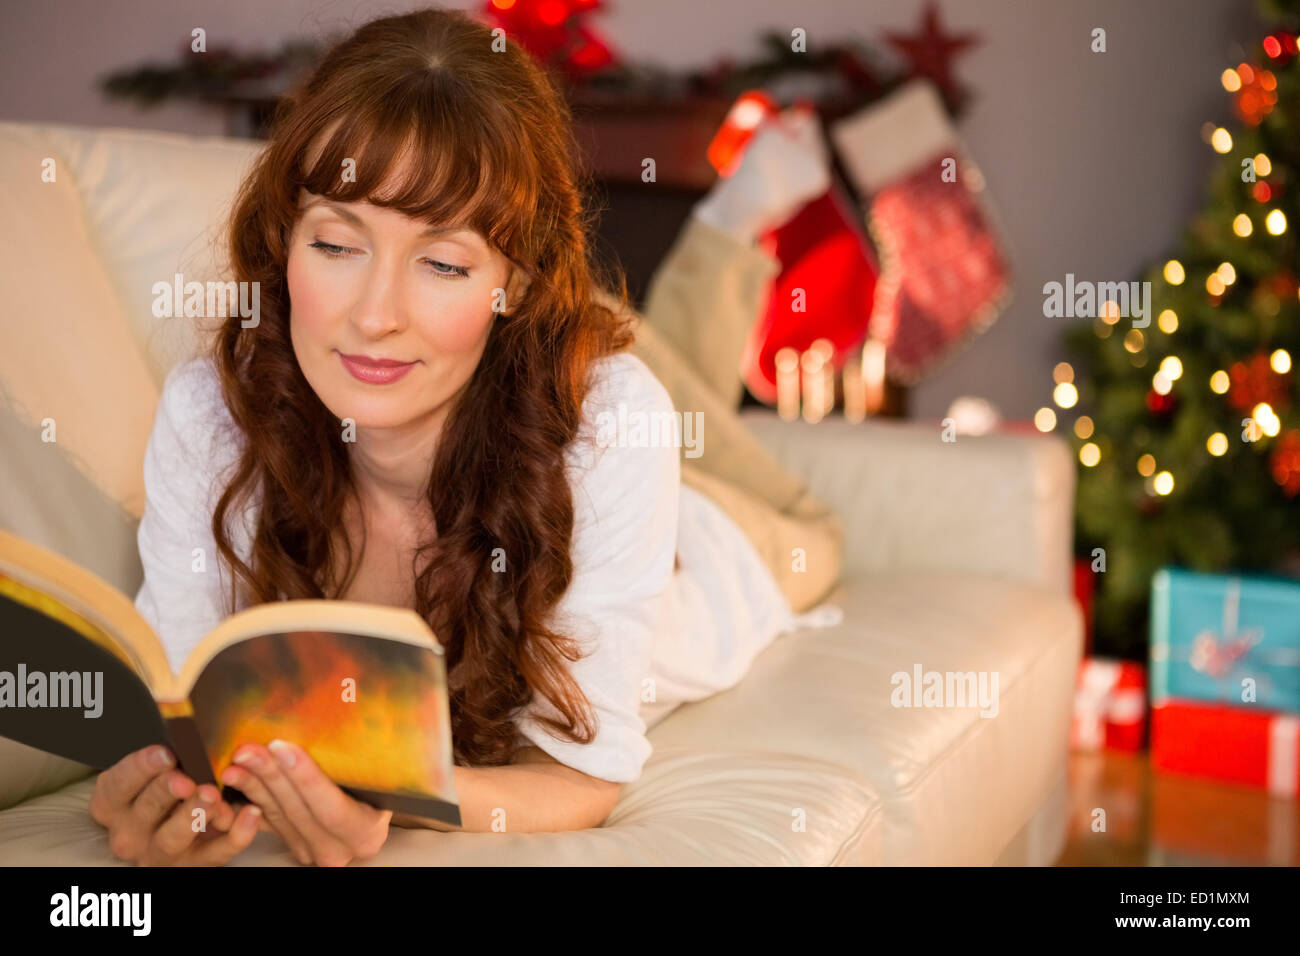 Pretty woman lying on a cosy couch reading book - Stock Image